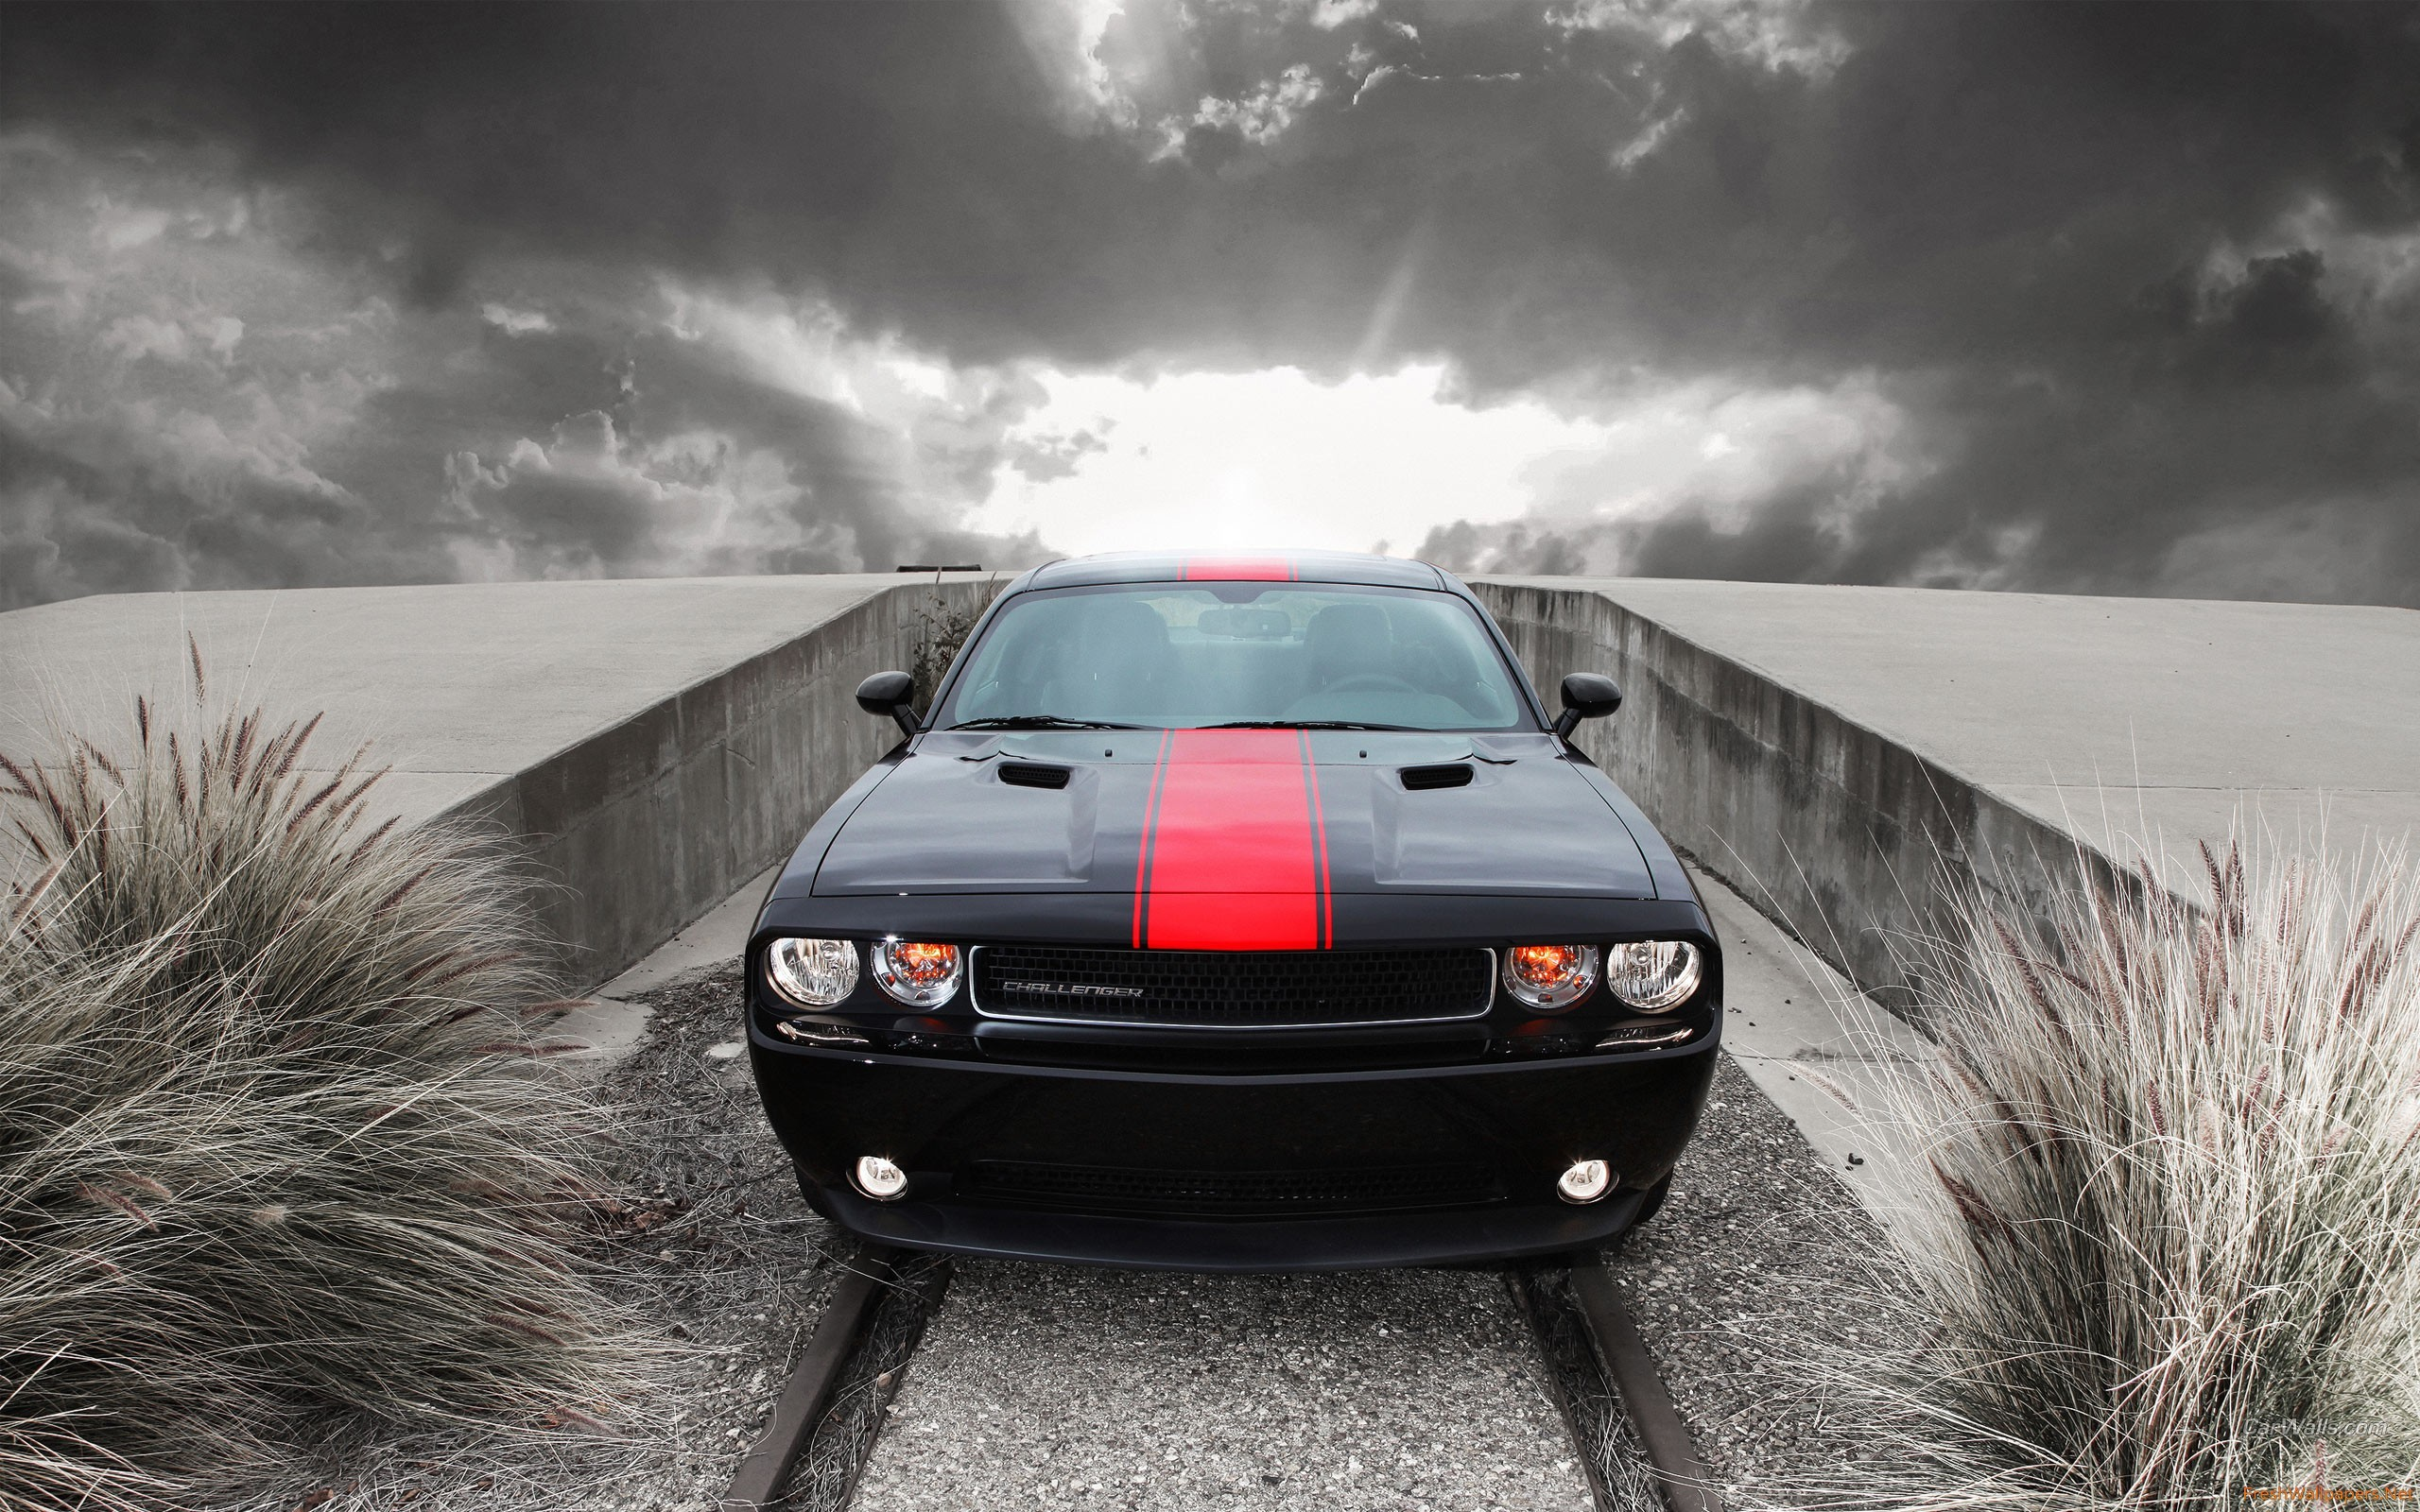 2560x1600 - Dodge Challenger Rallye Wallpapers 34